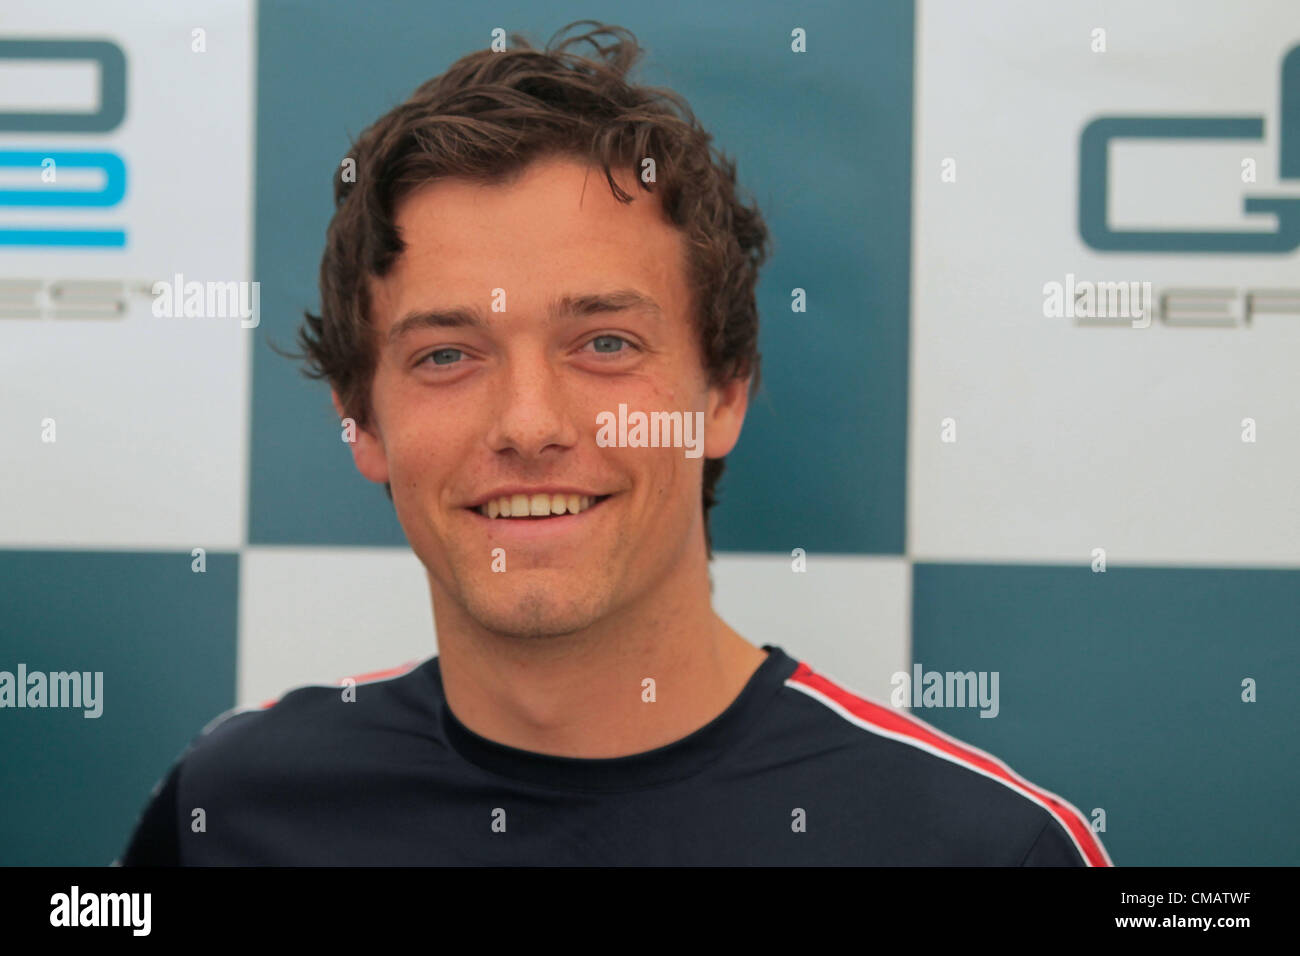 06.07.2012. Silverston, Northants, England.  Jolyon Palmer during press conference  GP2 cars qualification day. - Stock Image